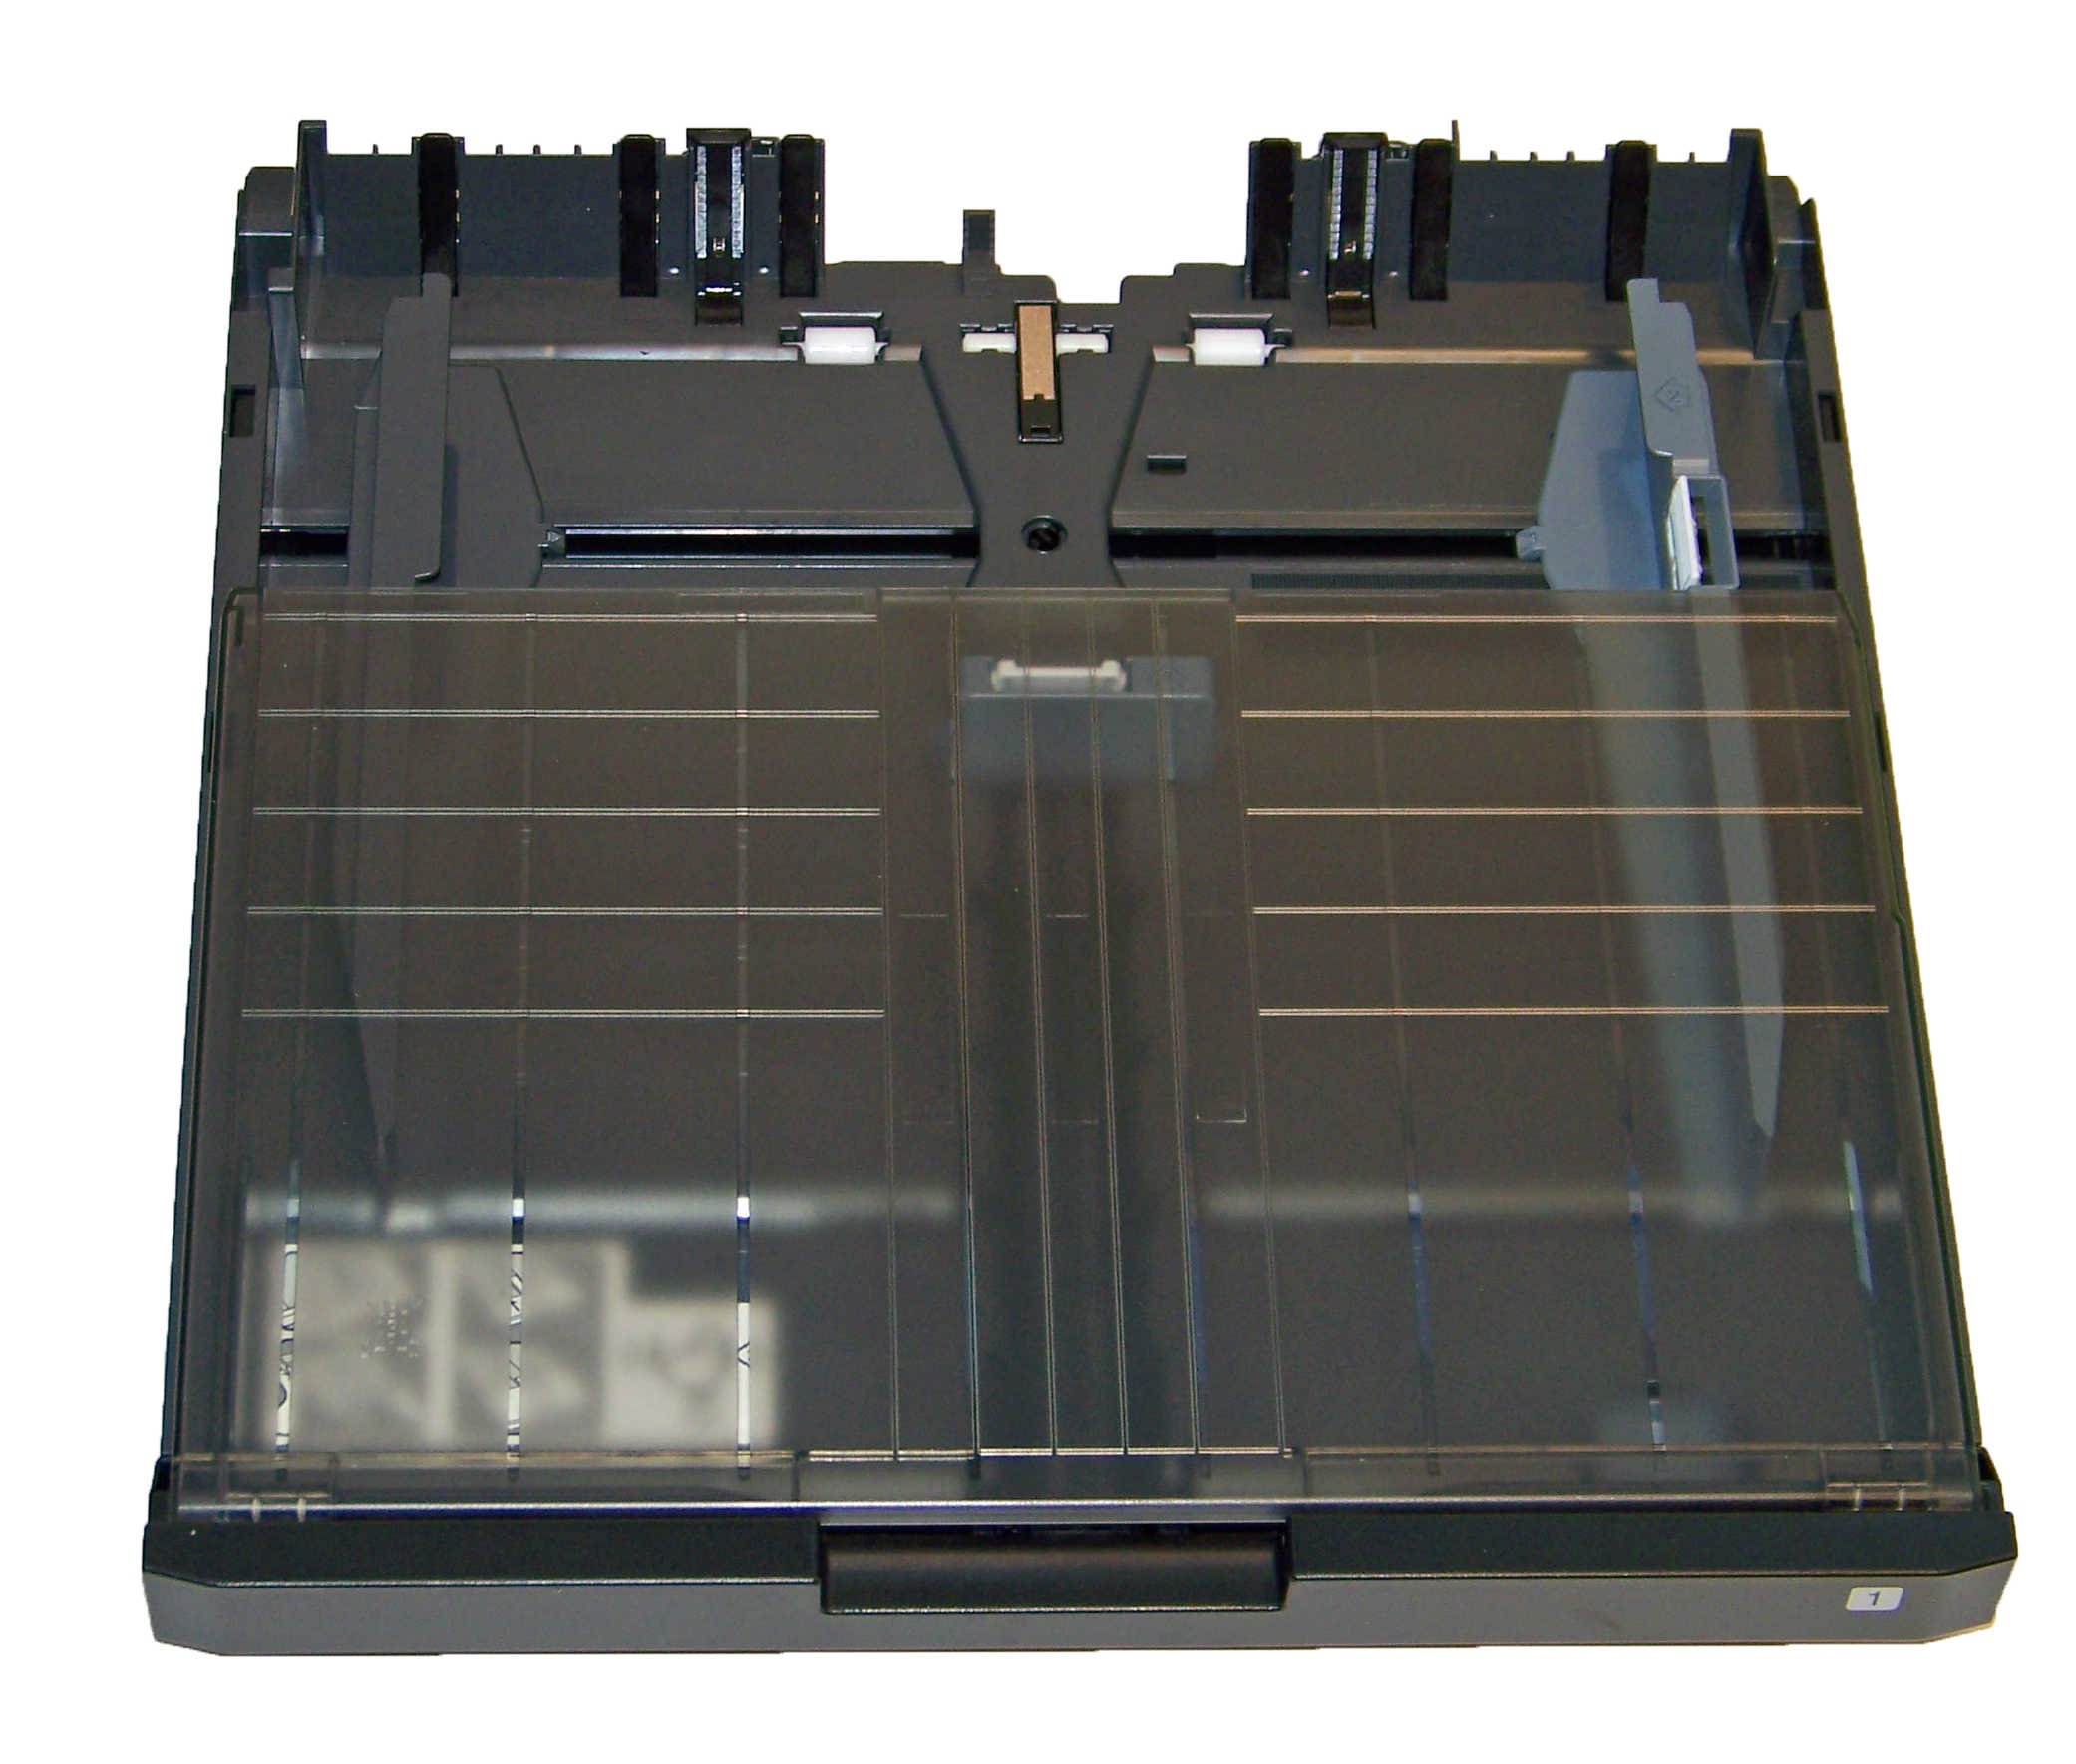 OEM Epson Paper Cassette Assembly For Epson WorkForce WF-7710, WF-7711, WF-7715 by Epson